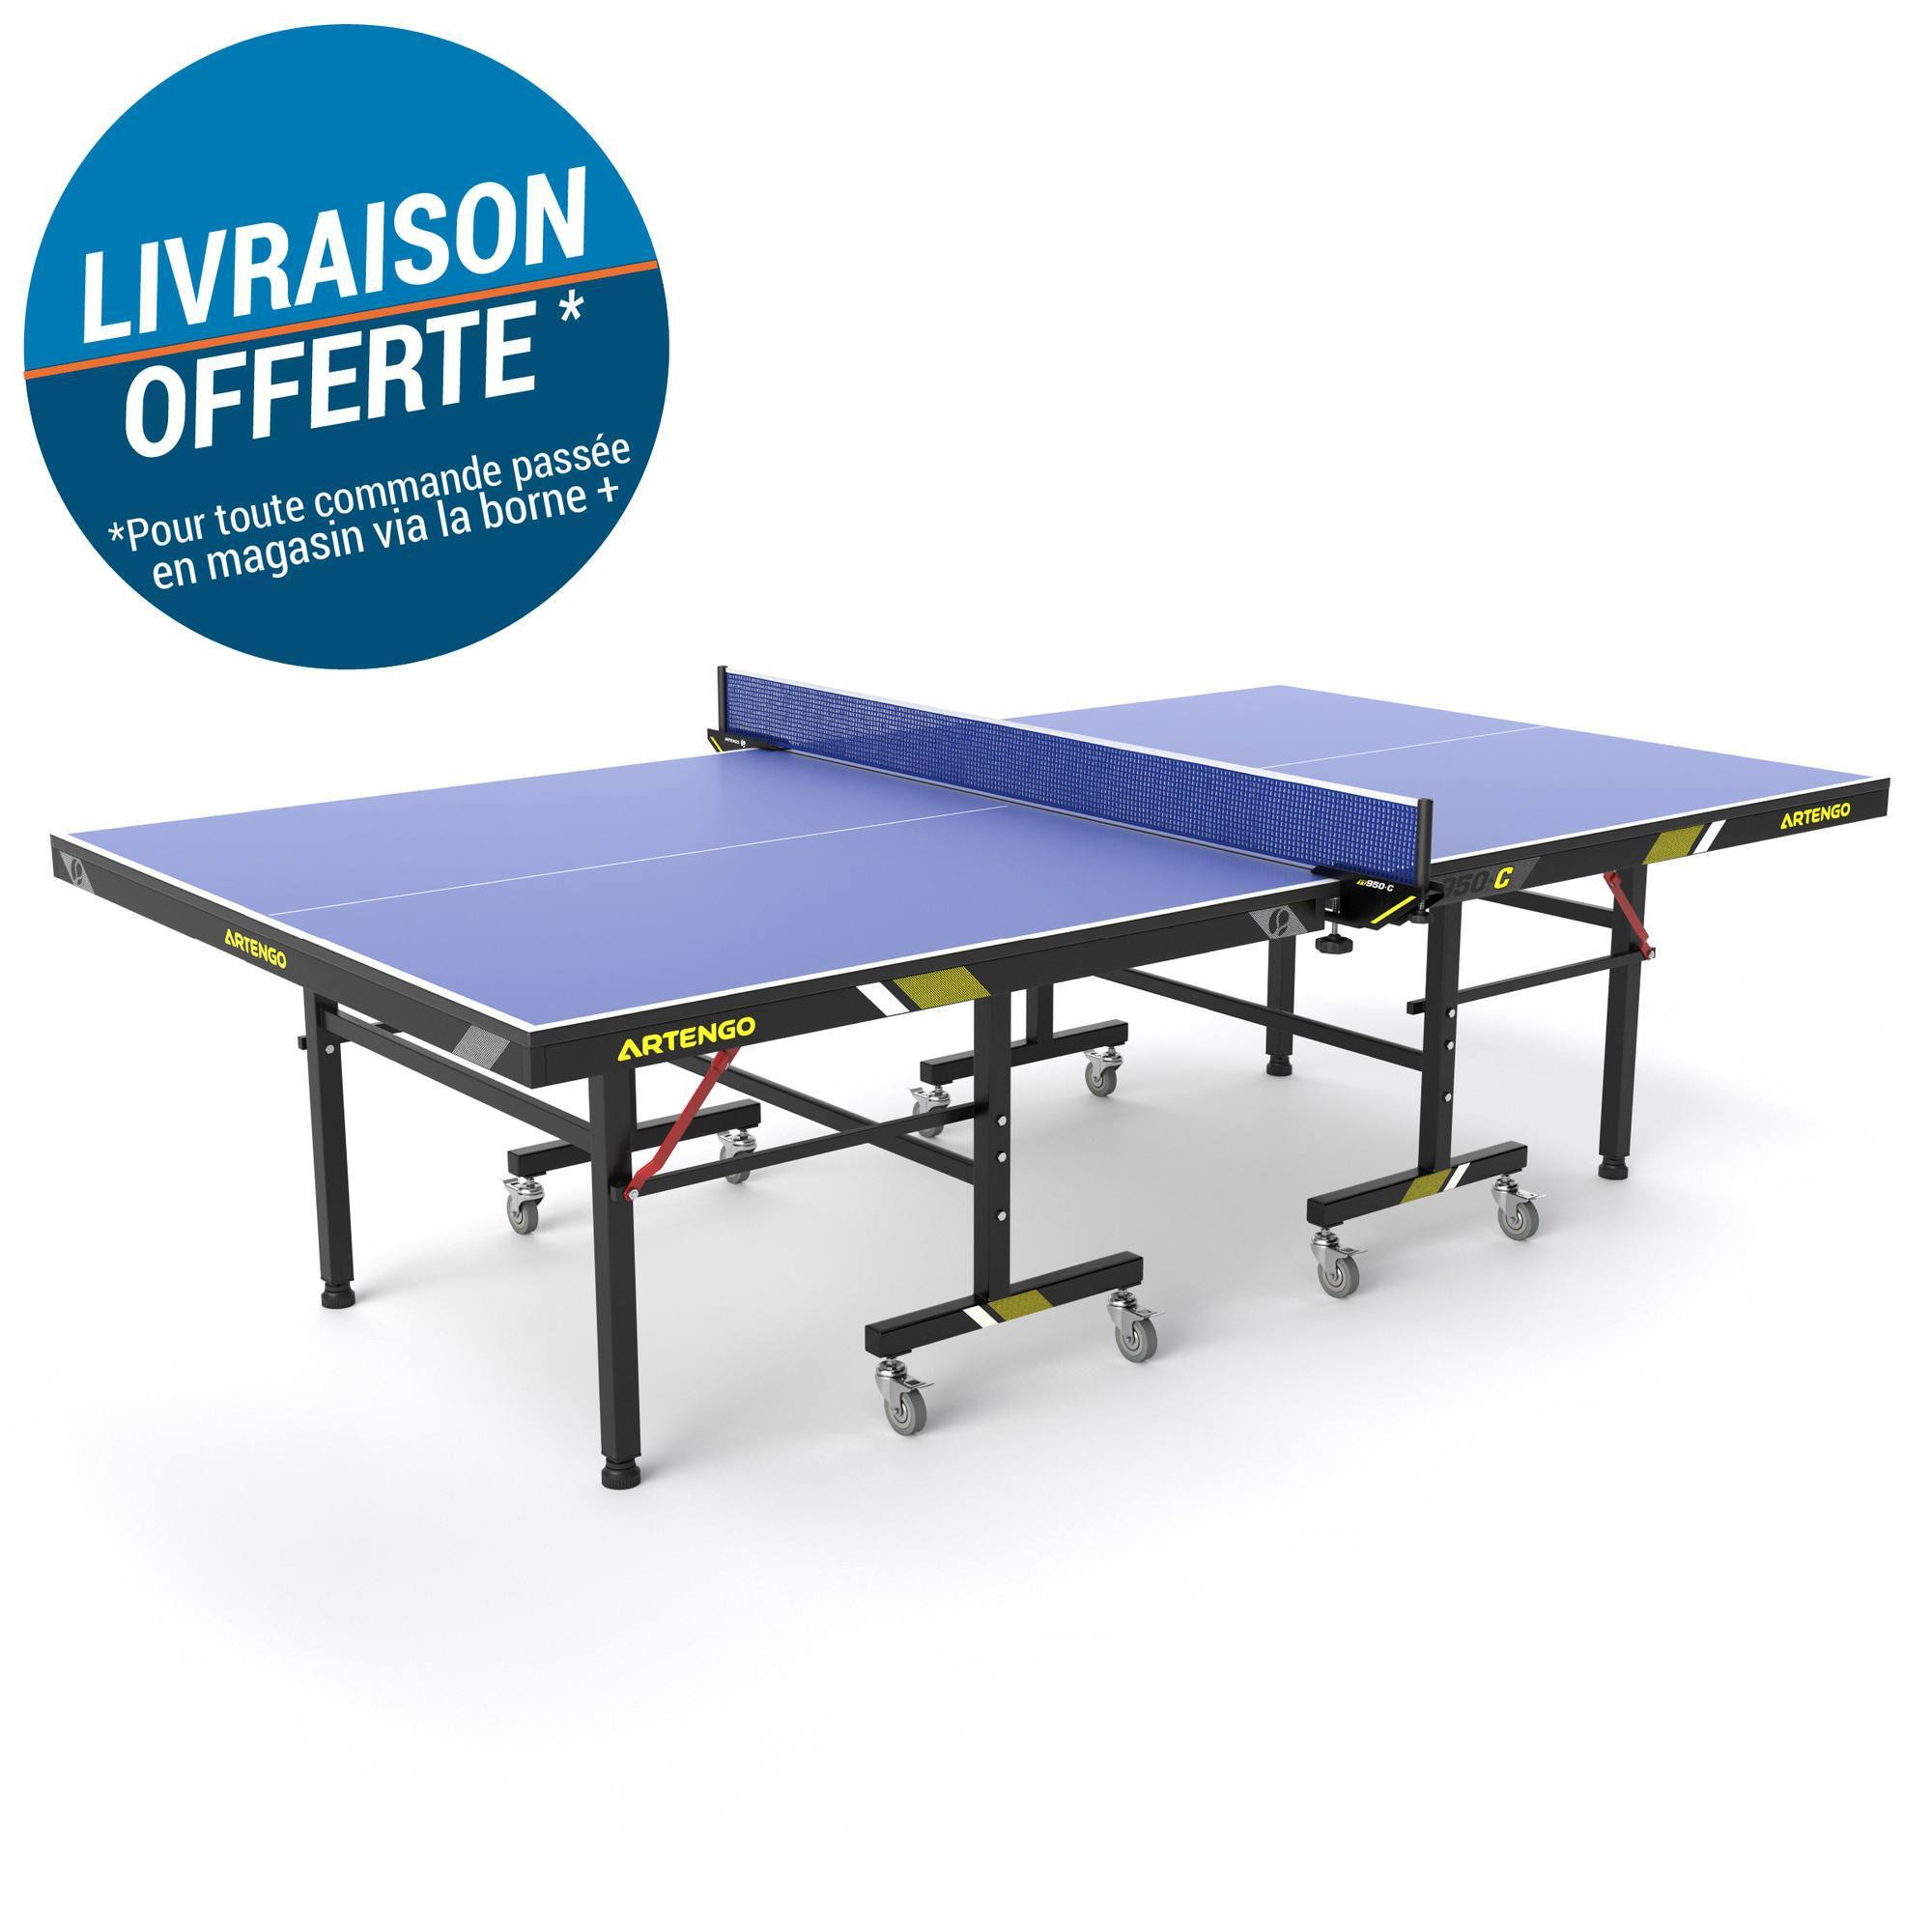 TABLE DE TENNIS DE TABLE EN CLUB FT 950 INDOOR FFTT BLEUE